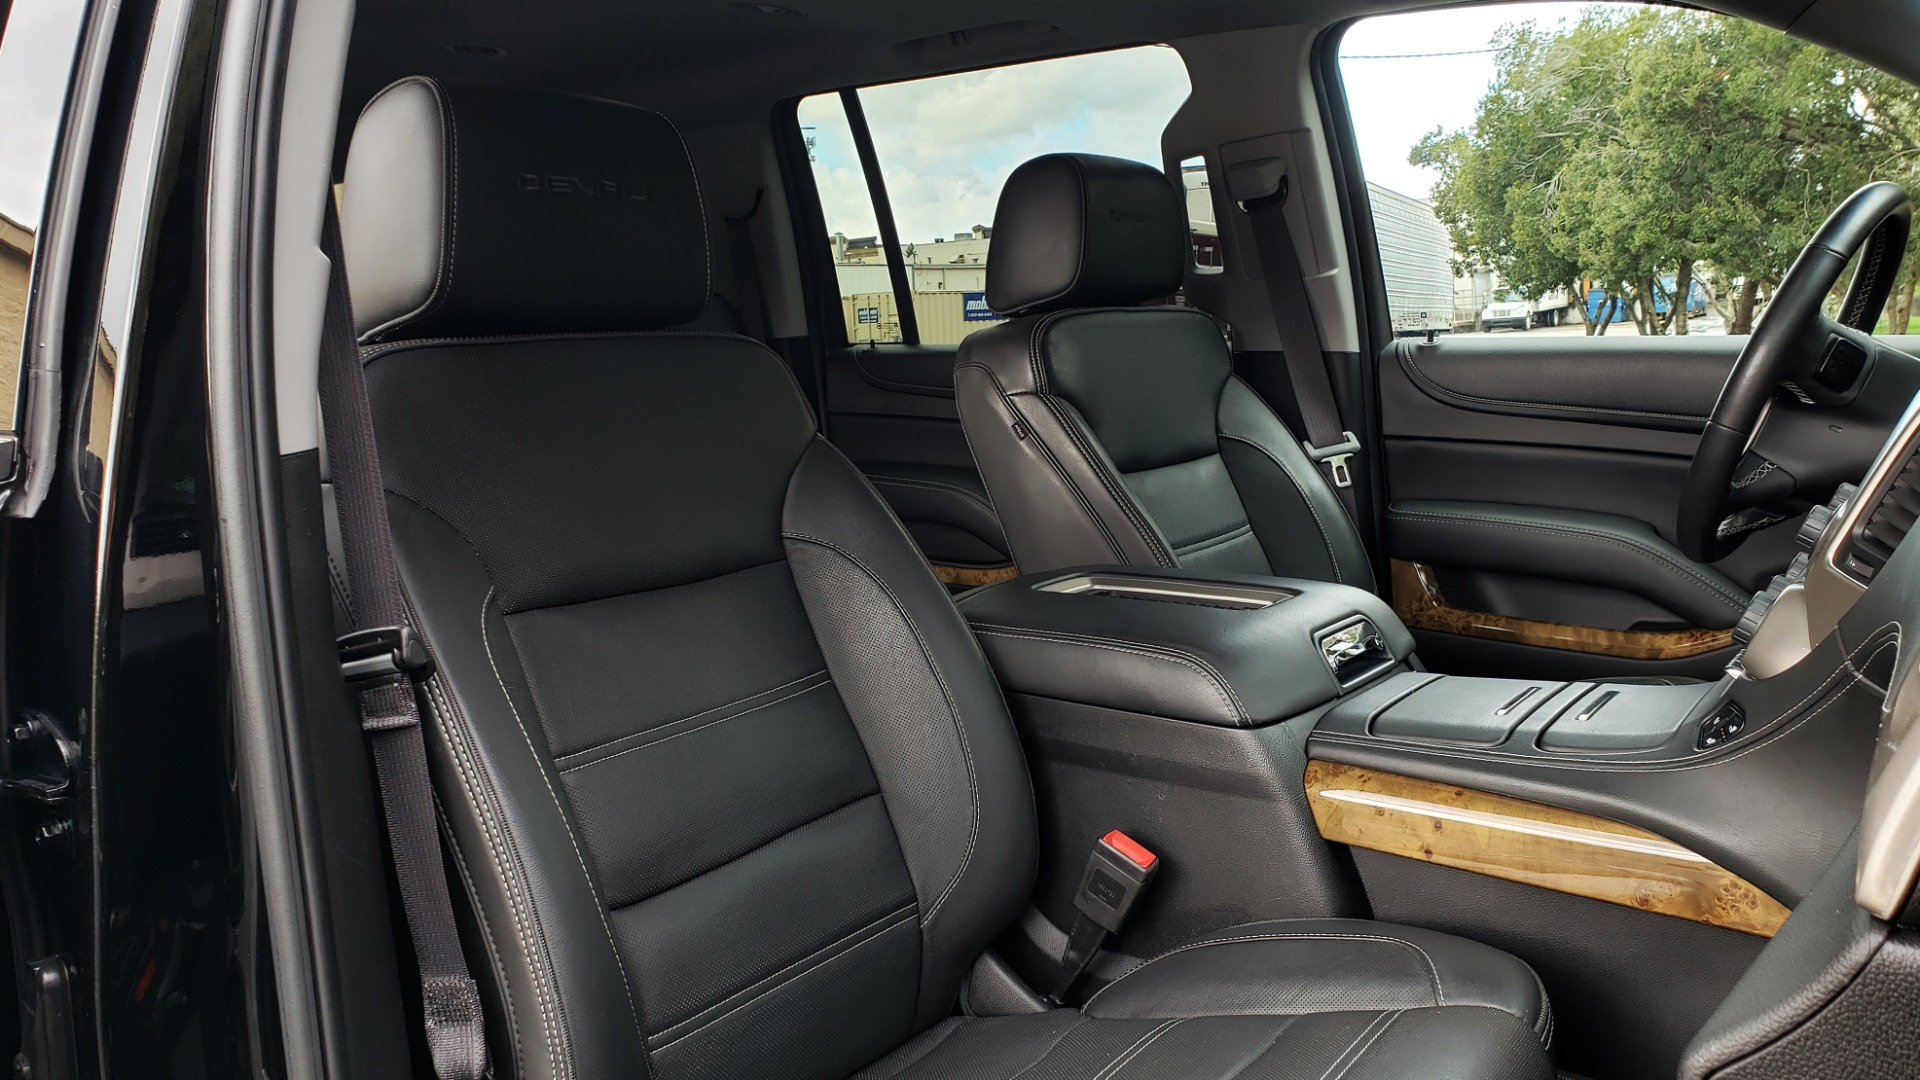 Used 2017 GMC YUKON XL DENALI 4WD / NAV / SUNROOF / ENT / 3-ROWS / BOSE / REARVIEW for sale $48,695 at Formula Imports in Charlotte NC 28227 77